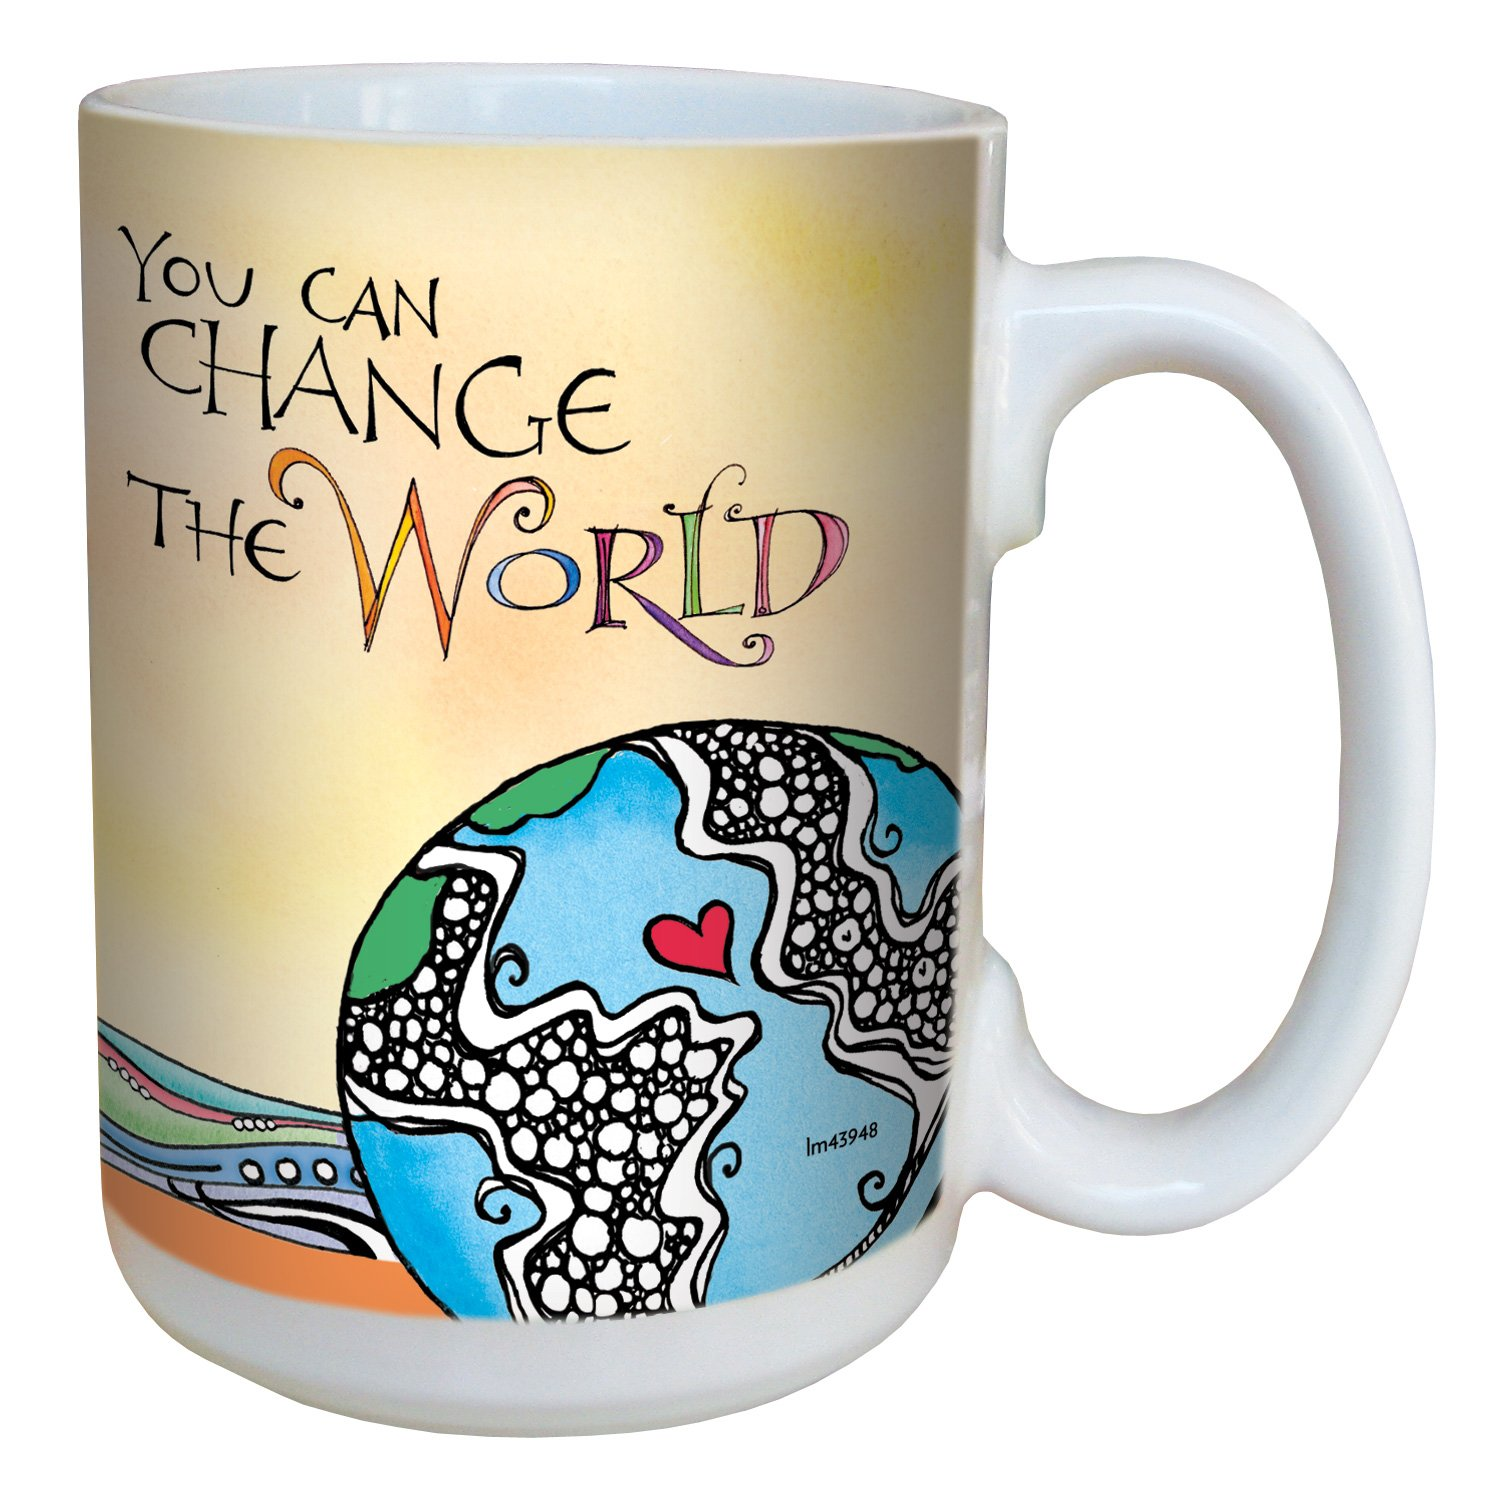 Tree-Free Greetings lm43948 You Have a Purpose by Joanne Fink Ceramic Mug with Full-Sized Handle, 15-Ounce Tree Free